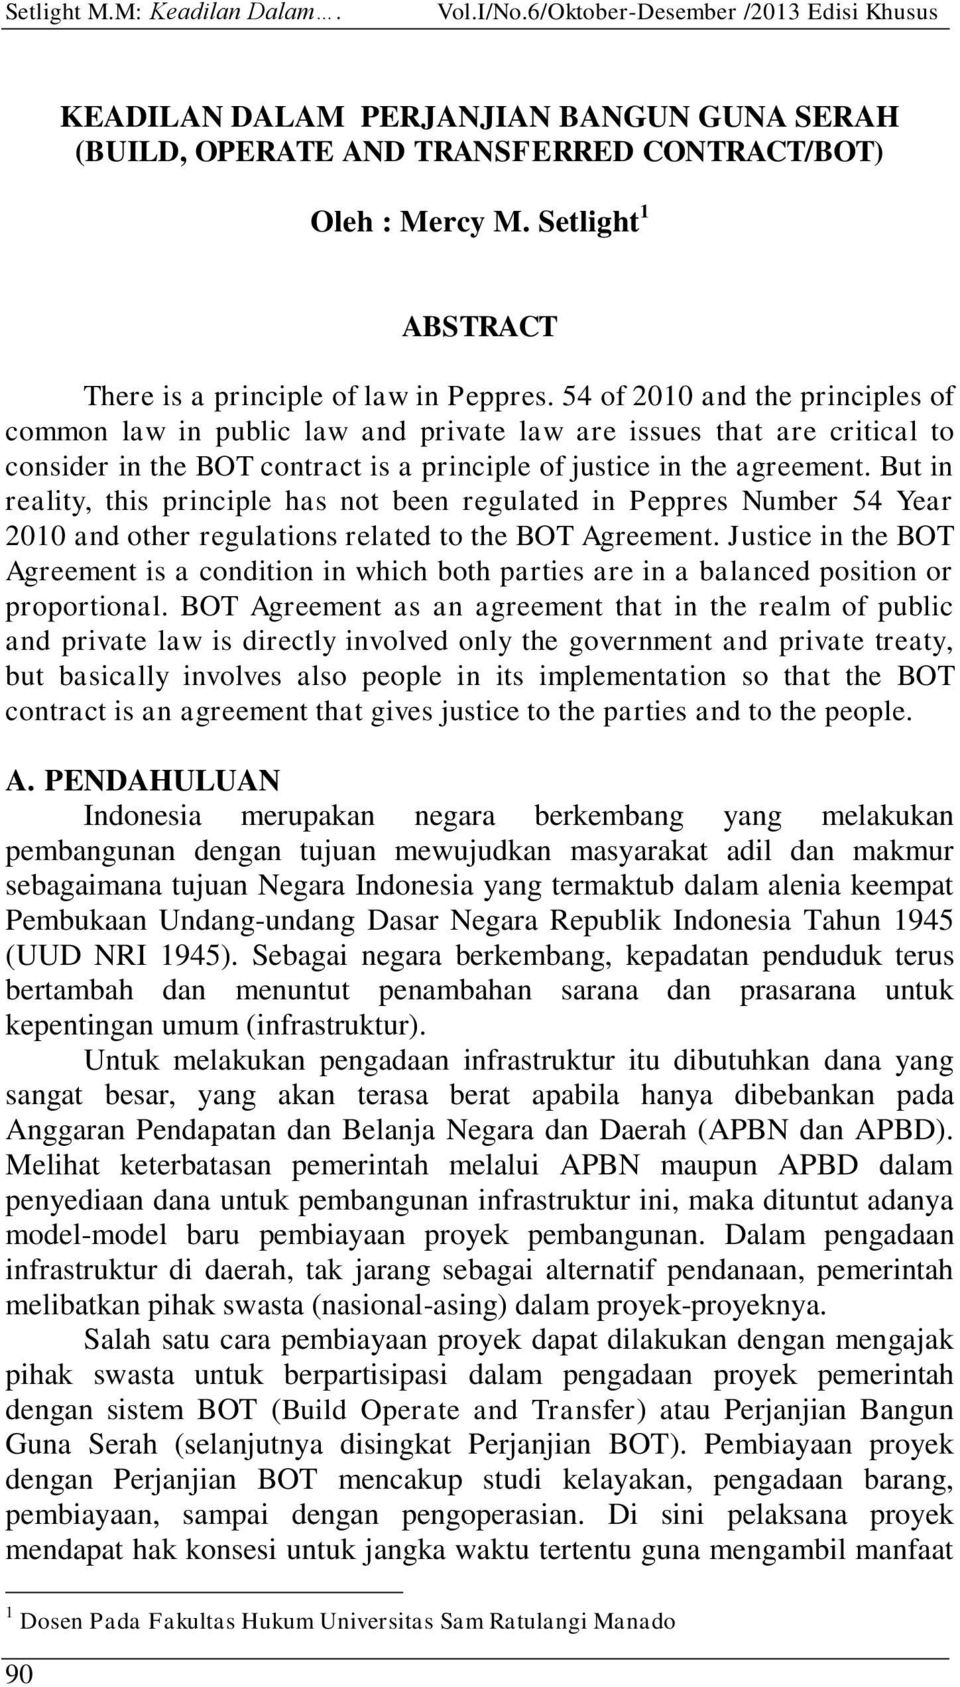 54 of 2010 and the principles of common law in public law and private law are issues that are critical to consider in the BOT contract is a principle of justice in the agreement.